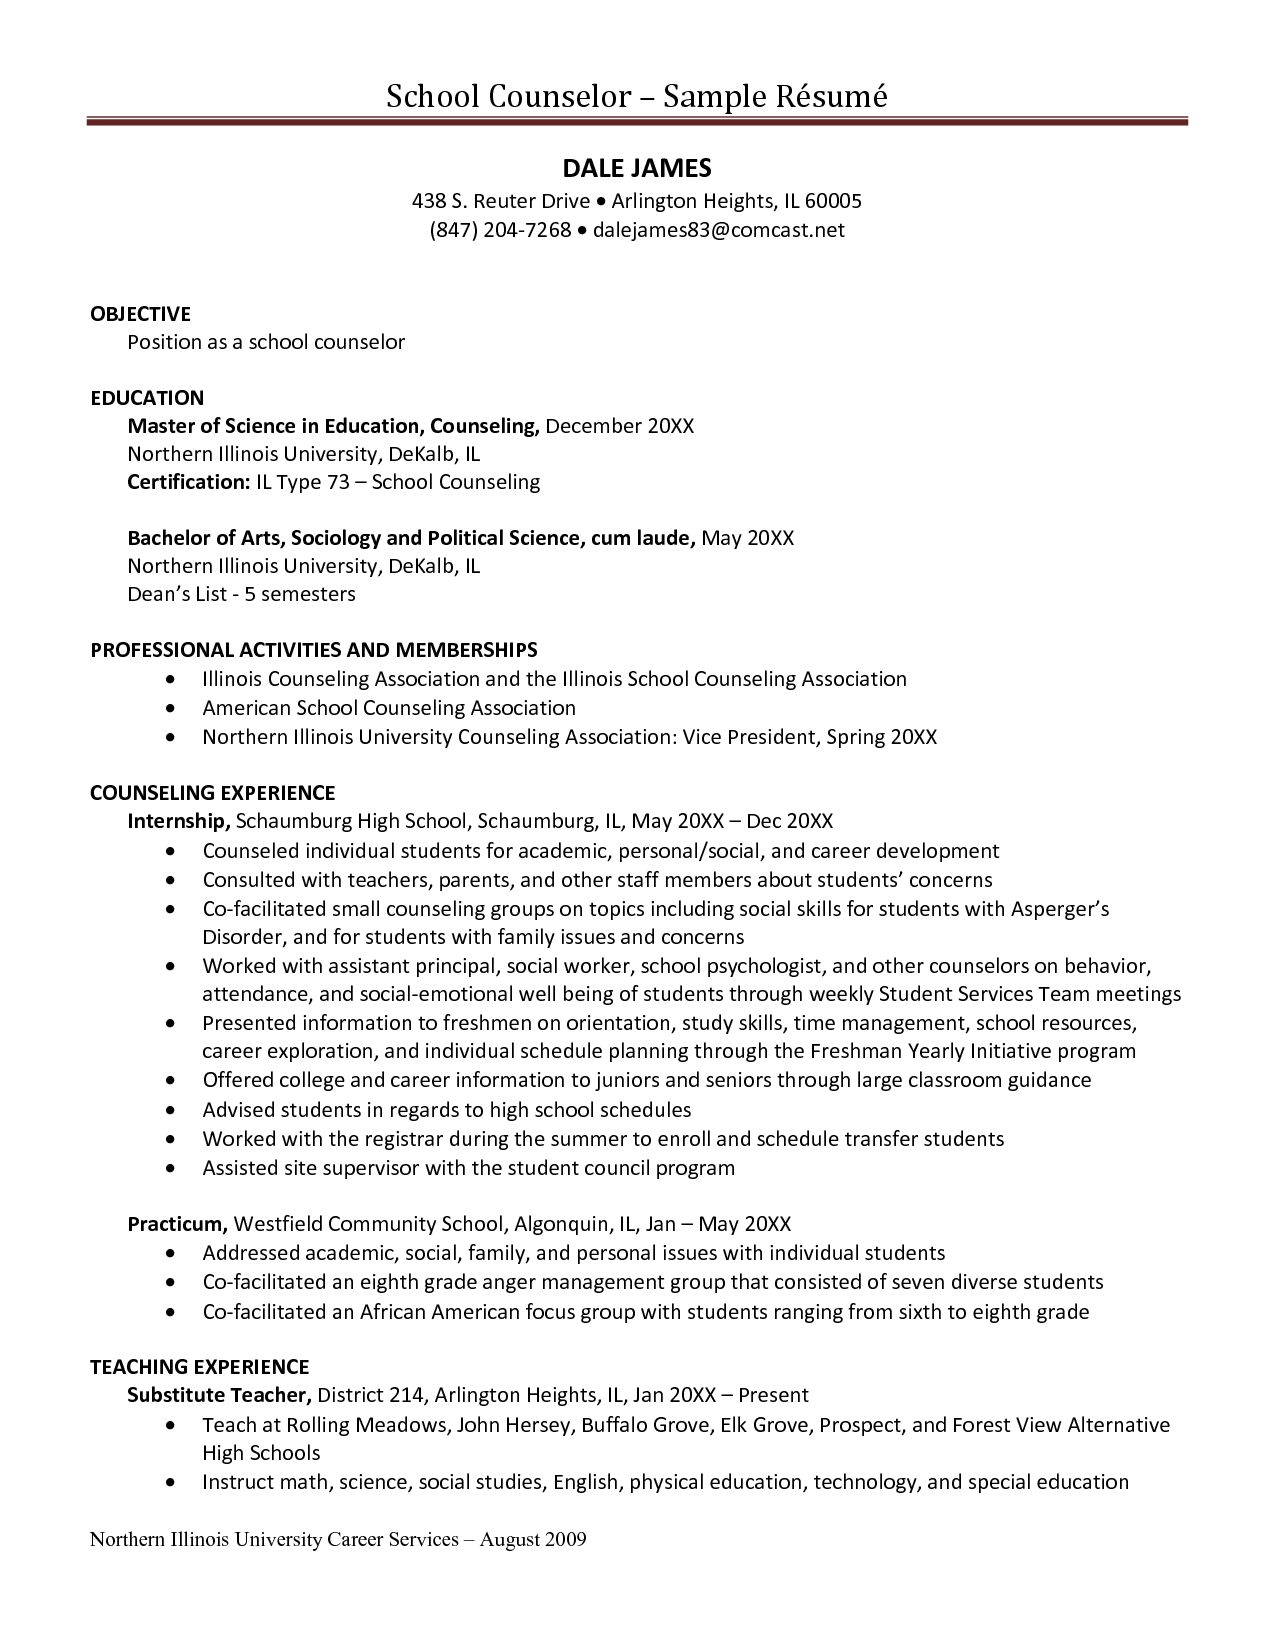 school counselor resume objective samples